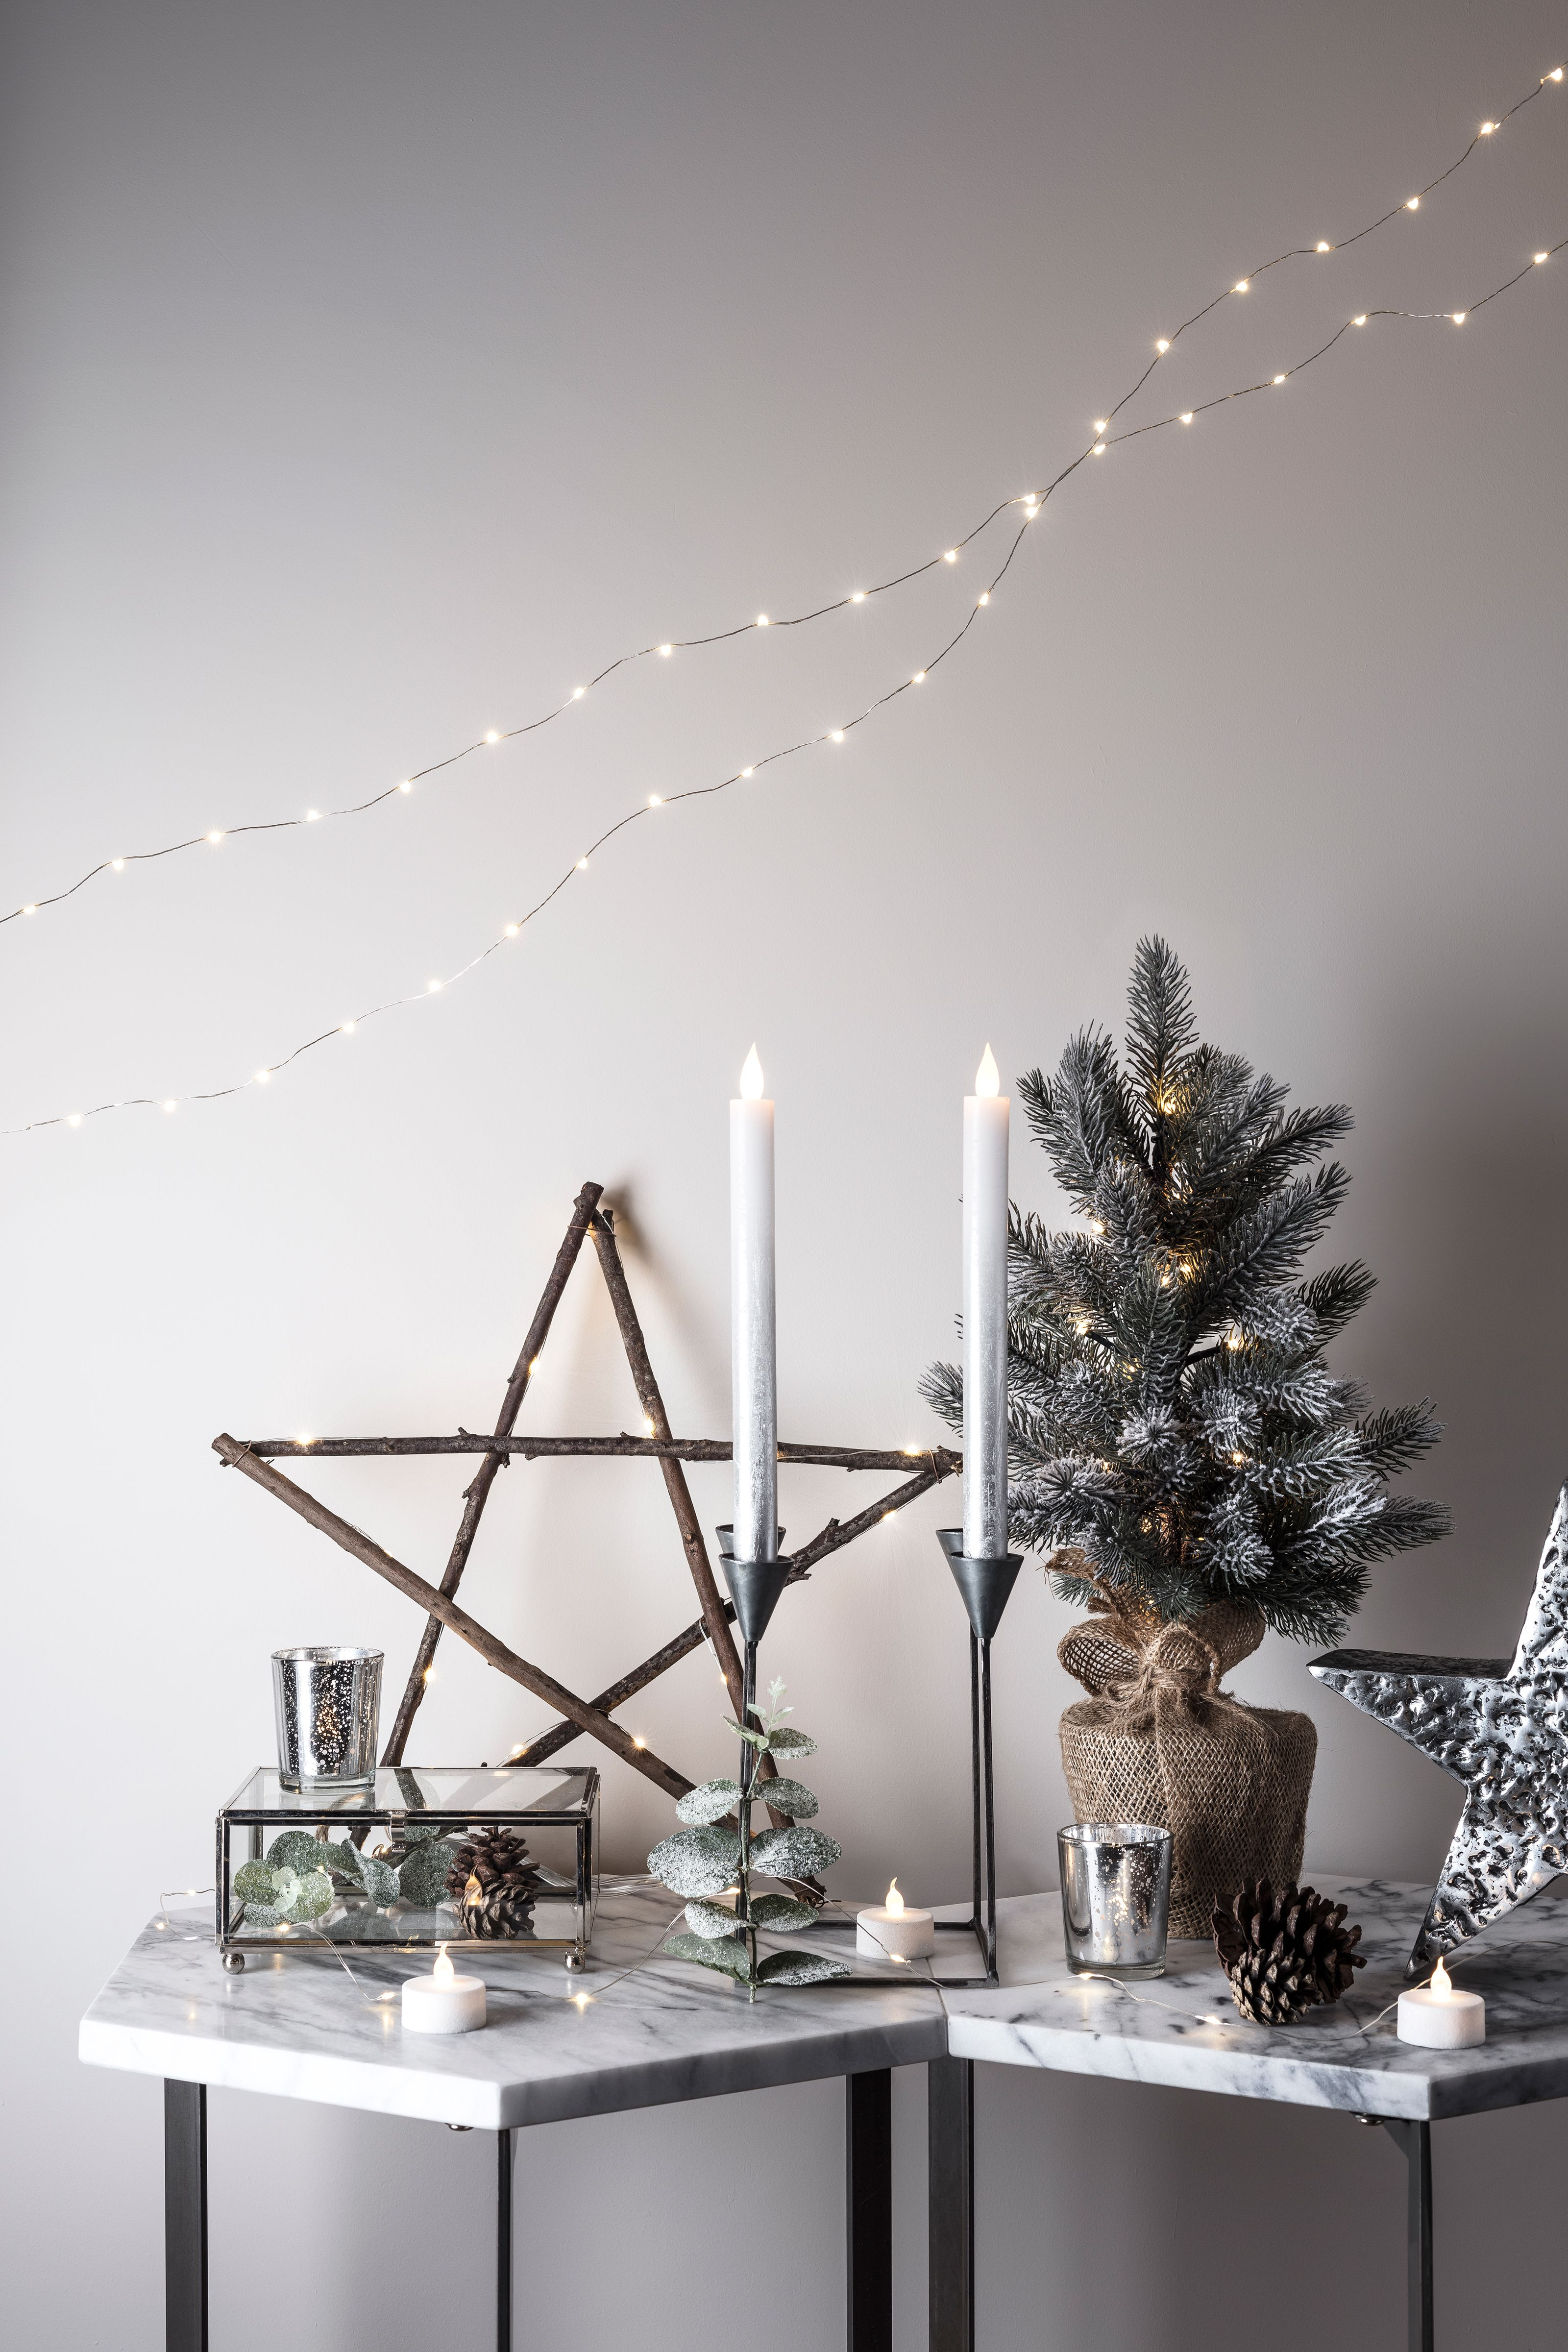 Give your home a festive forest feel with our wooden Calgary star